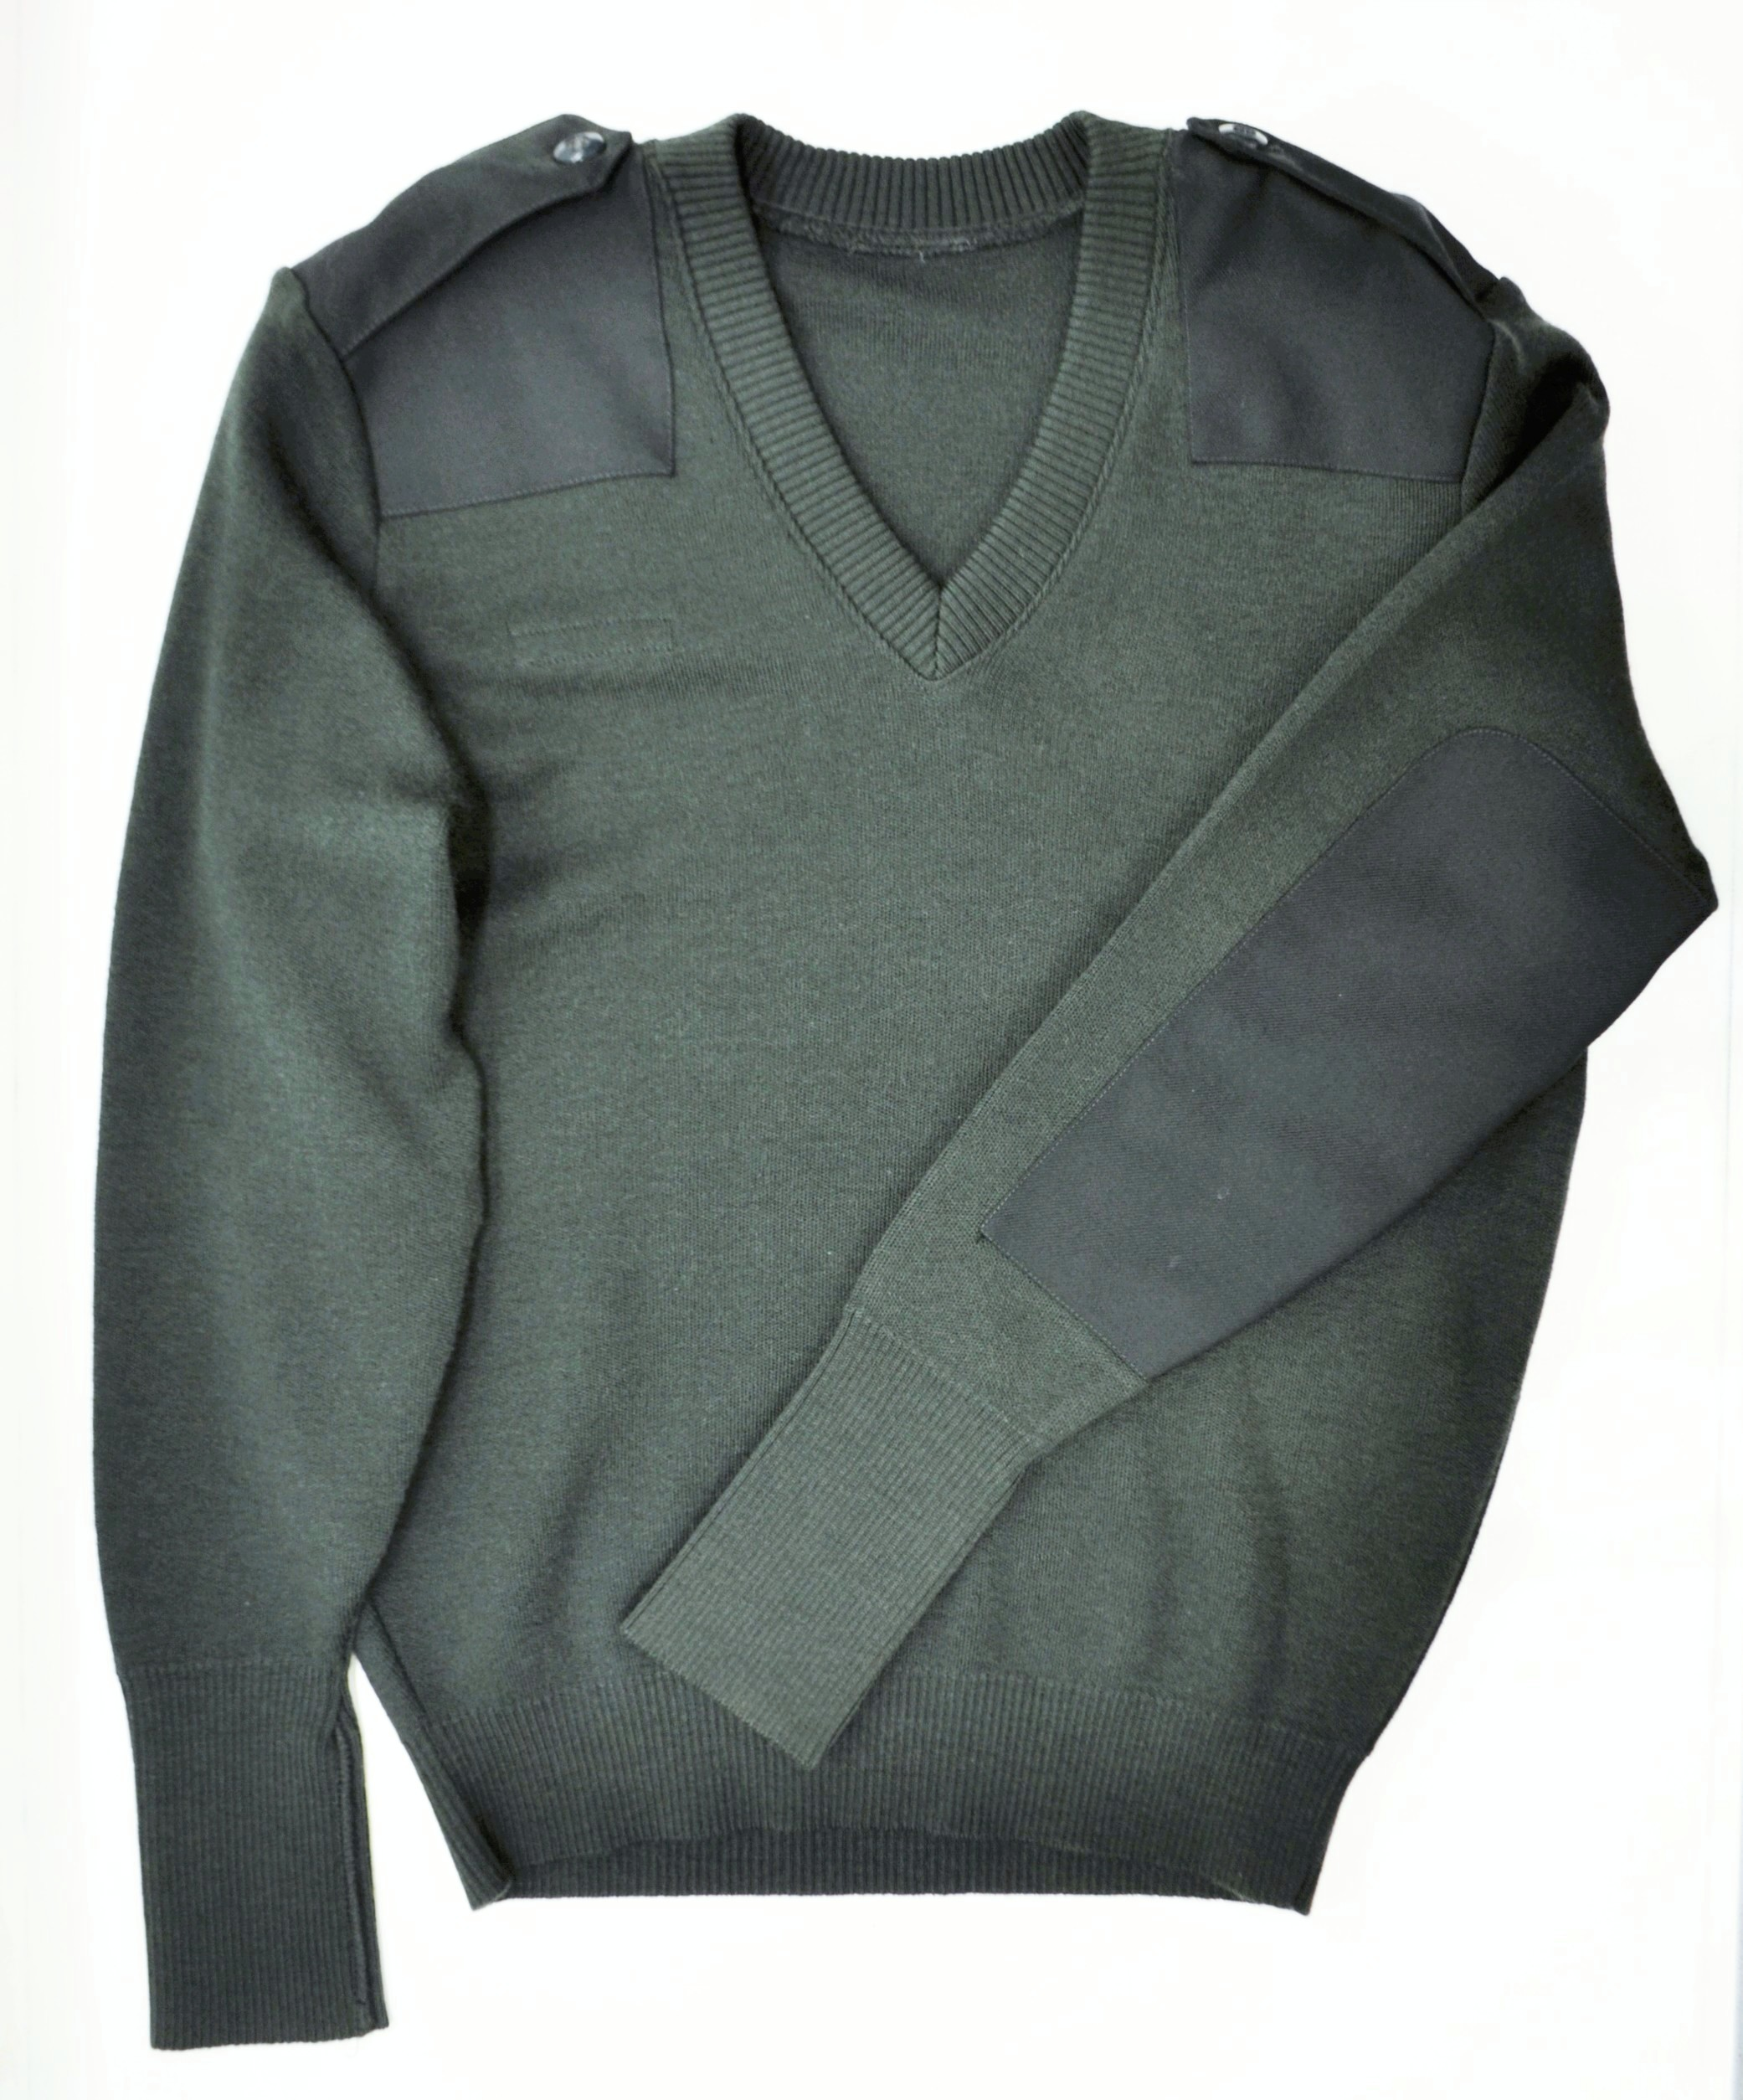 a75bfe69c6 Canadian Wool Commando V-neck Sweater